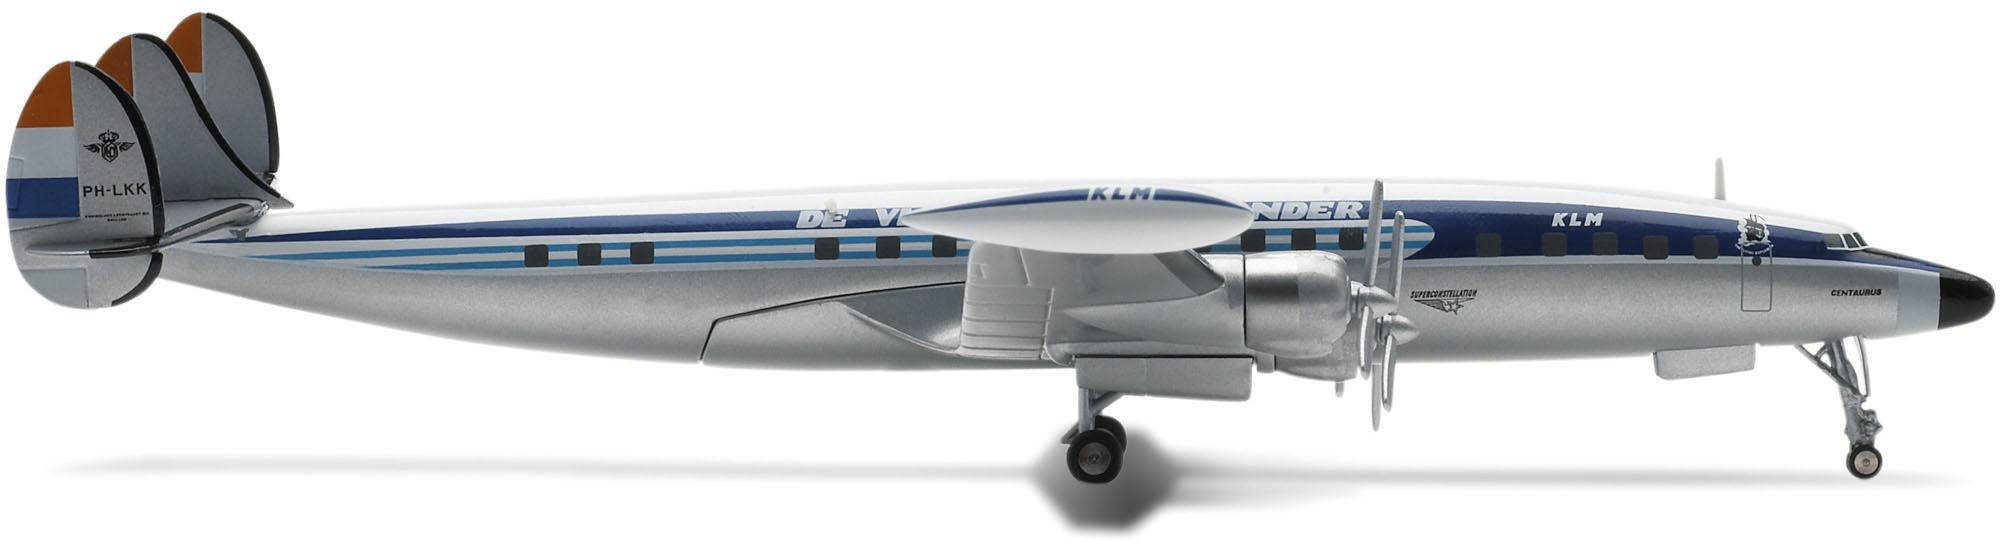 Image not found :L-1049G Super Constellation, KLM